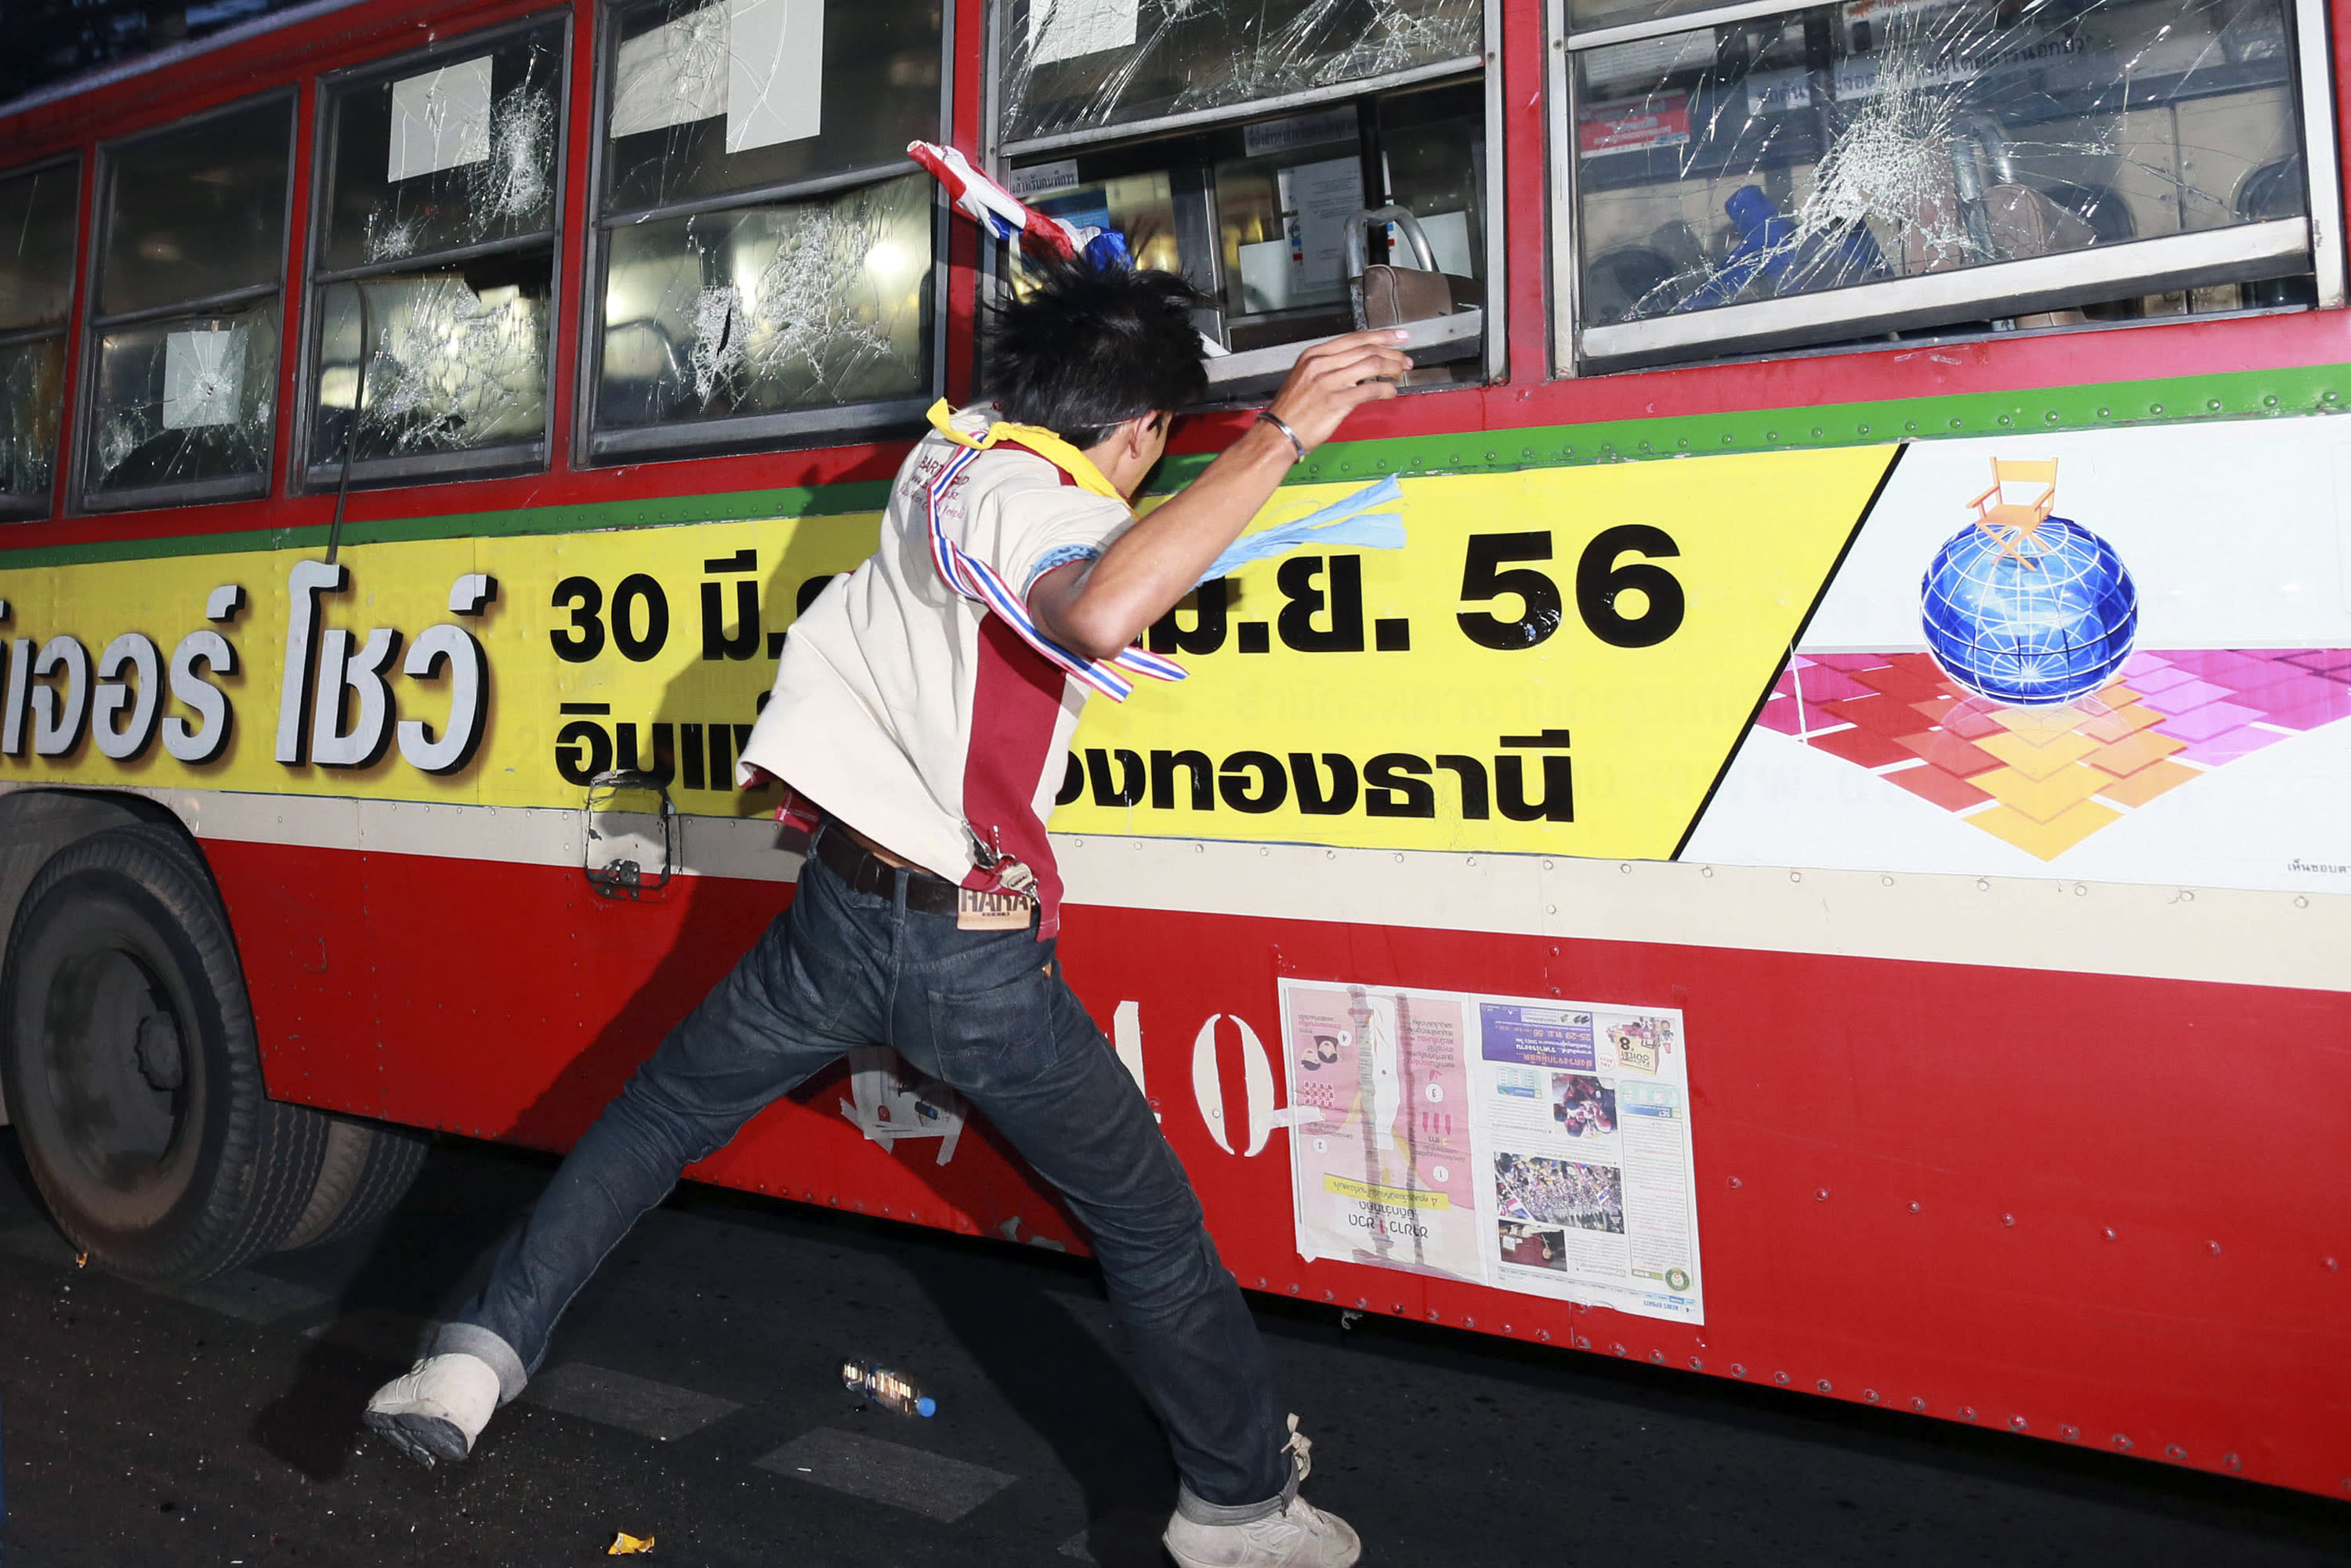 An anti-government protester attacks people they suspected of supporting the current Thai government on the bus in Bangkok,Thailand Saturday, Nov. 30, 2013. A mob of anti-government protesters smashed the windows of a moving Bangkok bus Saturday in the first eruption of violence after a week of tense street protests.(AP Photo/Wason Wanichakorn)